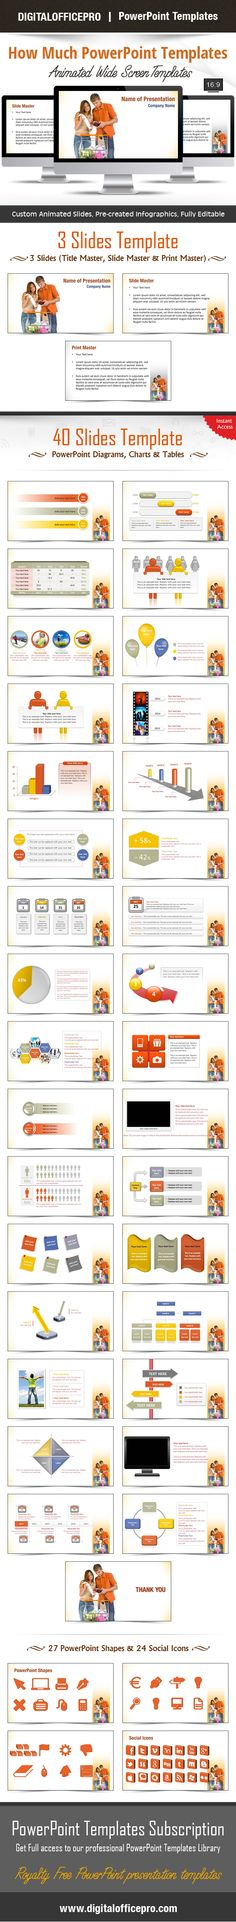 Nursing powerpoint templates and backgrounds free red orange nursing powerpoint templates and backgrounds free red orange and yellow powerpoint templates httpindezinepowerpointfreetemplate toneelgroepblik Image collections